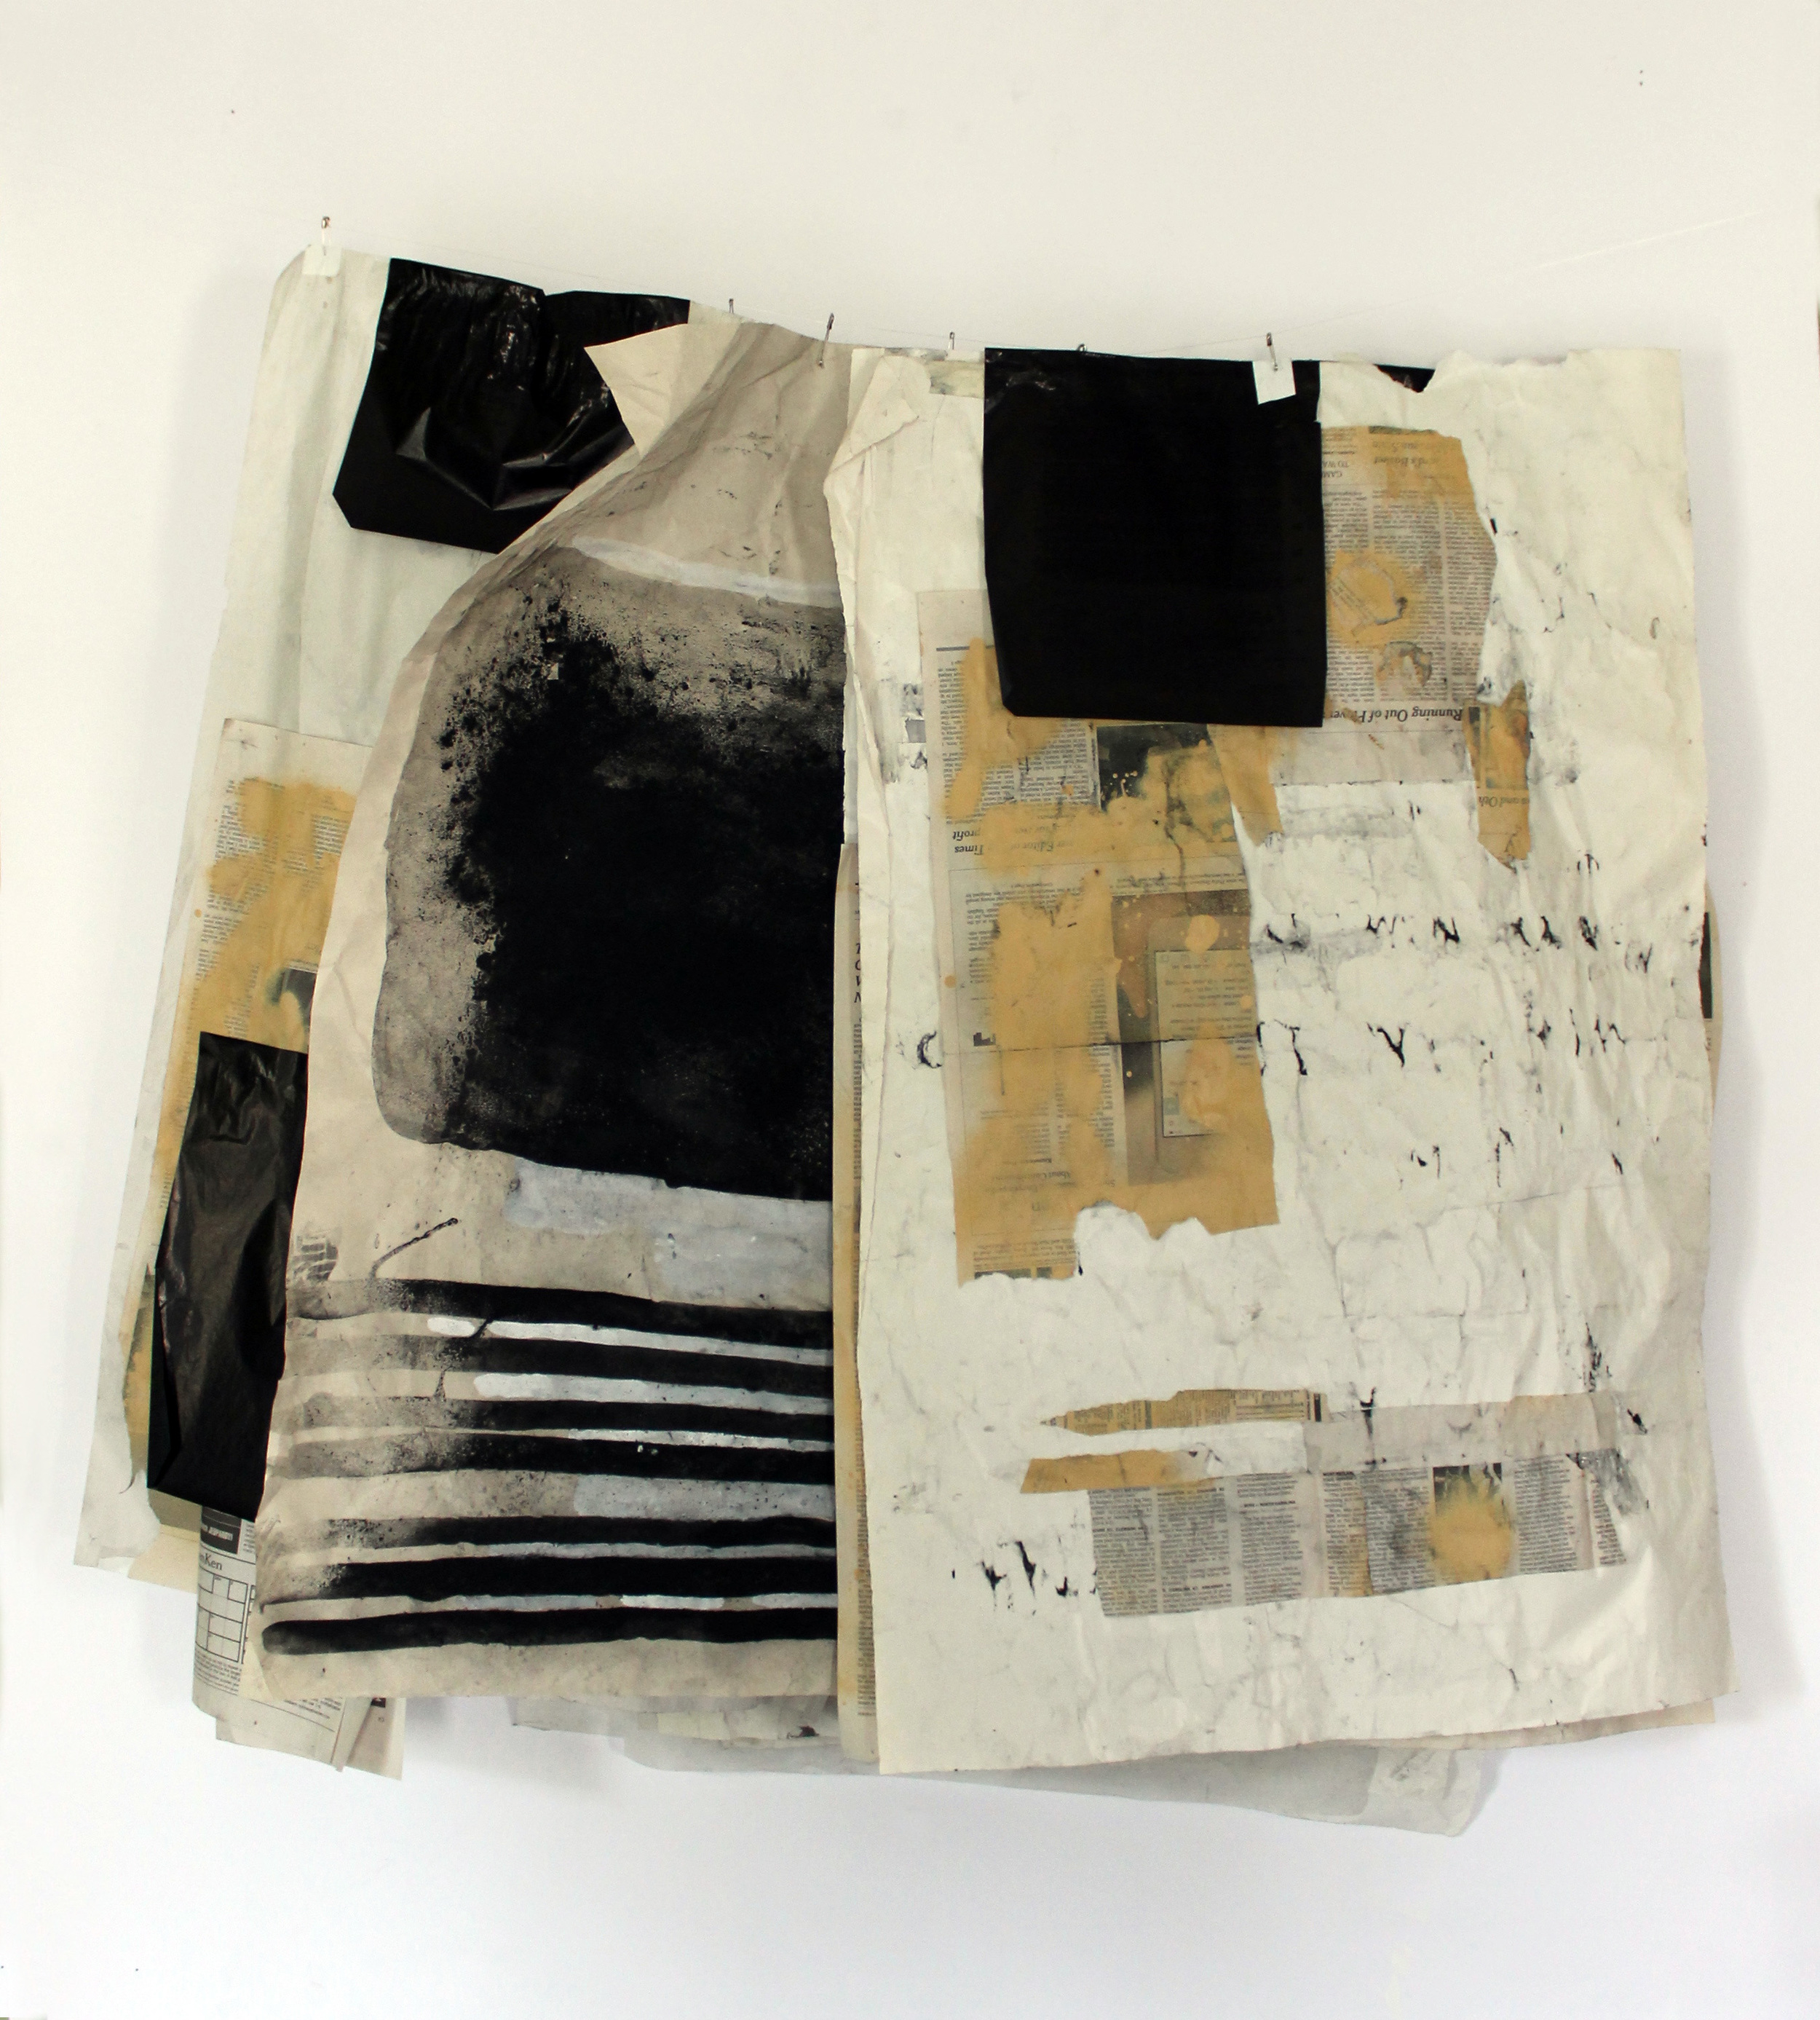 Letters to Ruby ,2014,graphite, carbon paper, acrylic, safety pins,39 x 38 x 8 in.